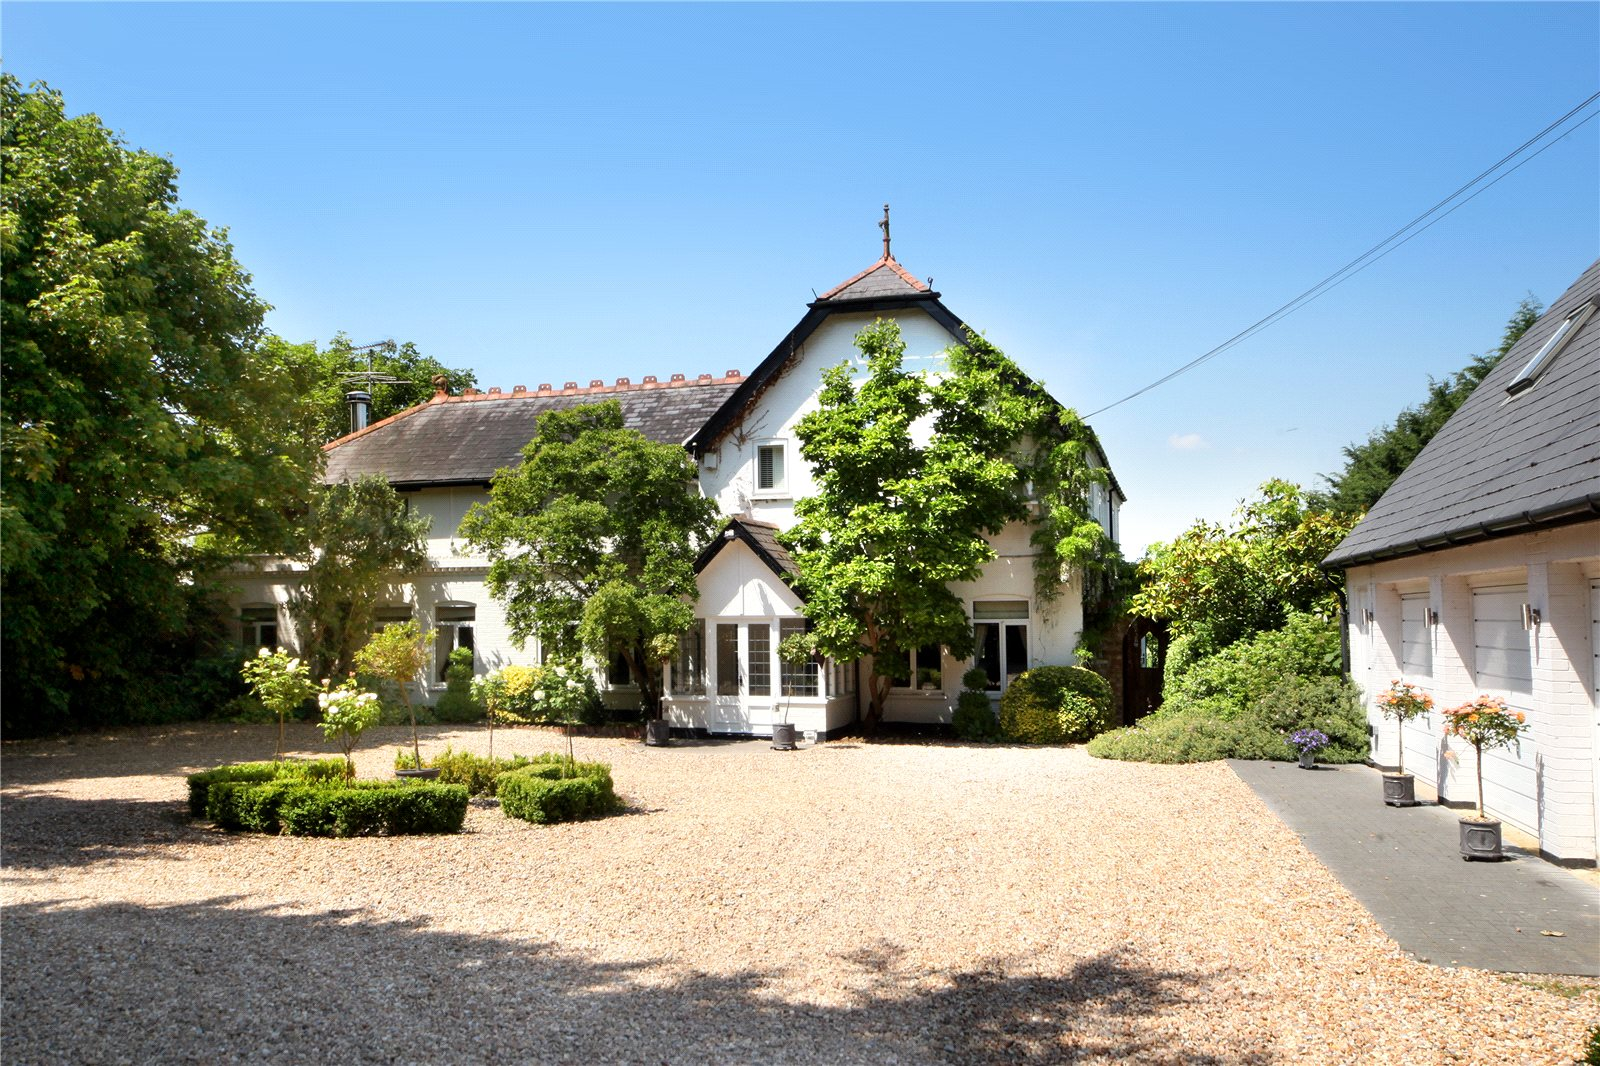 Additional photo for property listing at North Street, Winkfield, Berkshire, SL4 Winkfield, Αγγλια